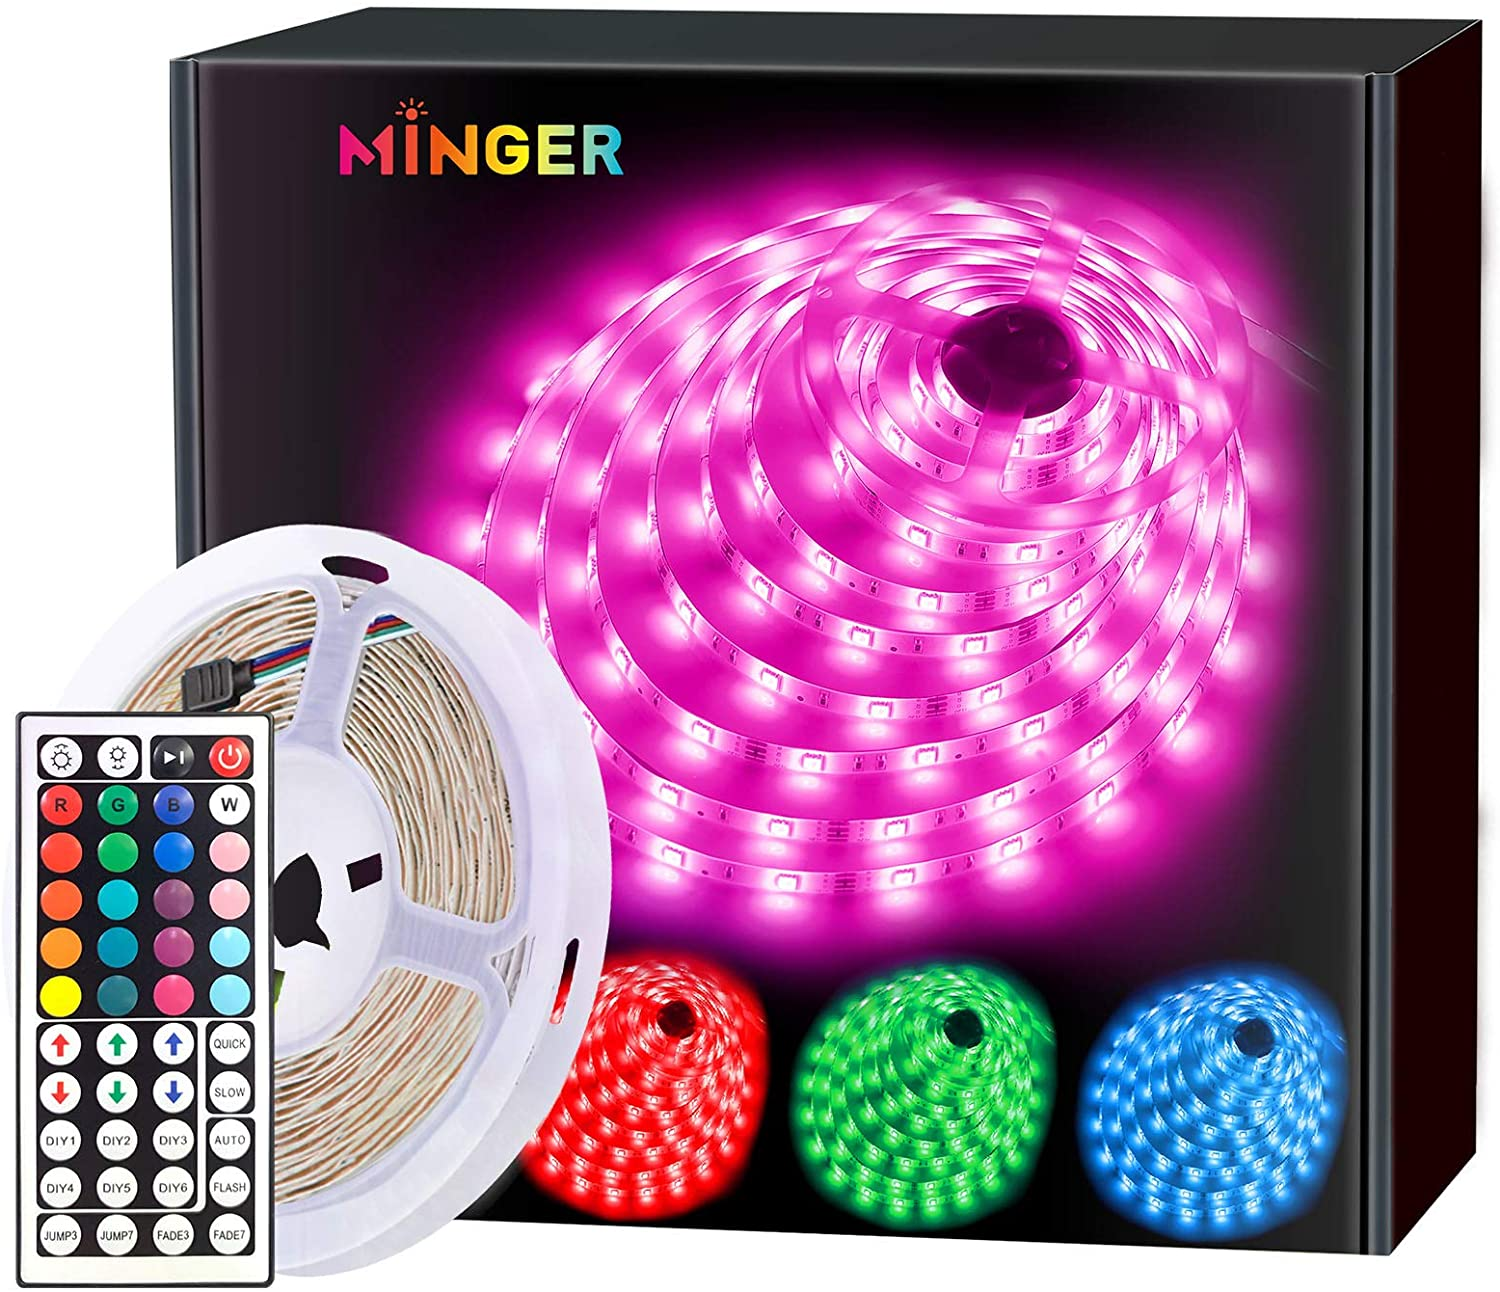 Minger Led Strip Lights 16 4ft Rgb Color Changing Led Lights For Home Kitchen Room Bedroom Dorm Room Bar With Ir Remote Control 5050 Leds Diy Mode Home Improvement